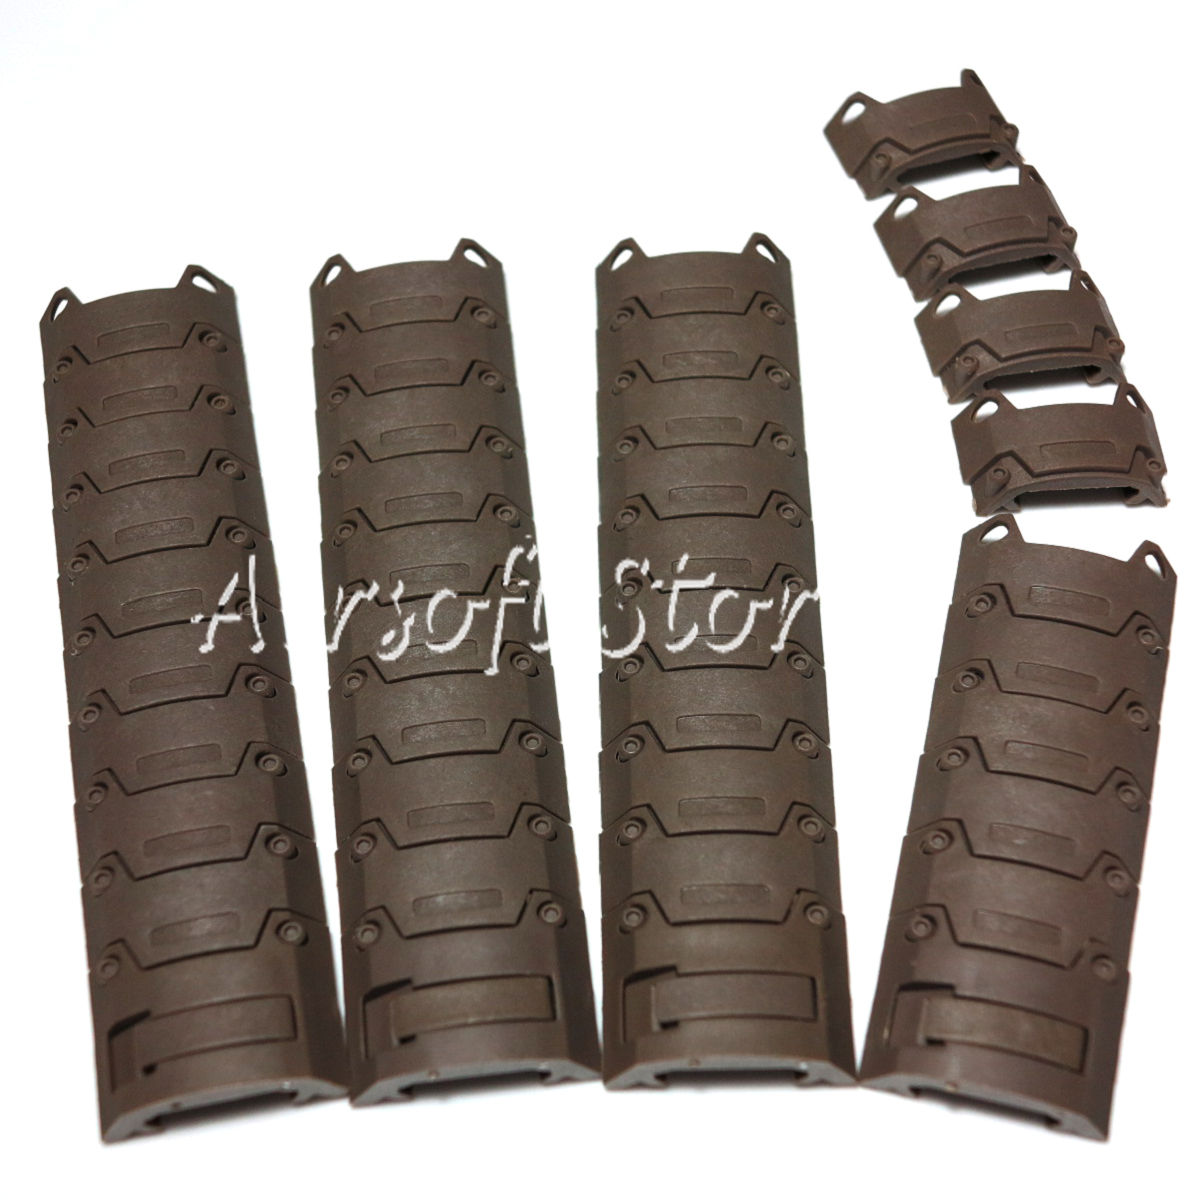 4pcs Set Tactical Gear D-Boys 20mm RIS Sectional Armor Rail Cover Panel Brown